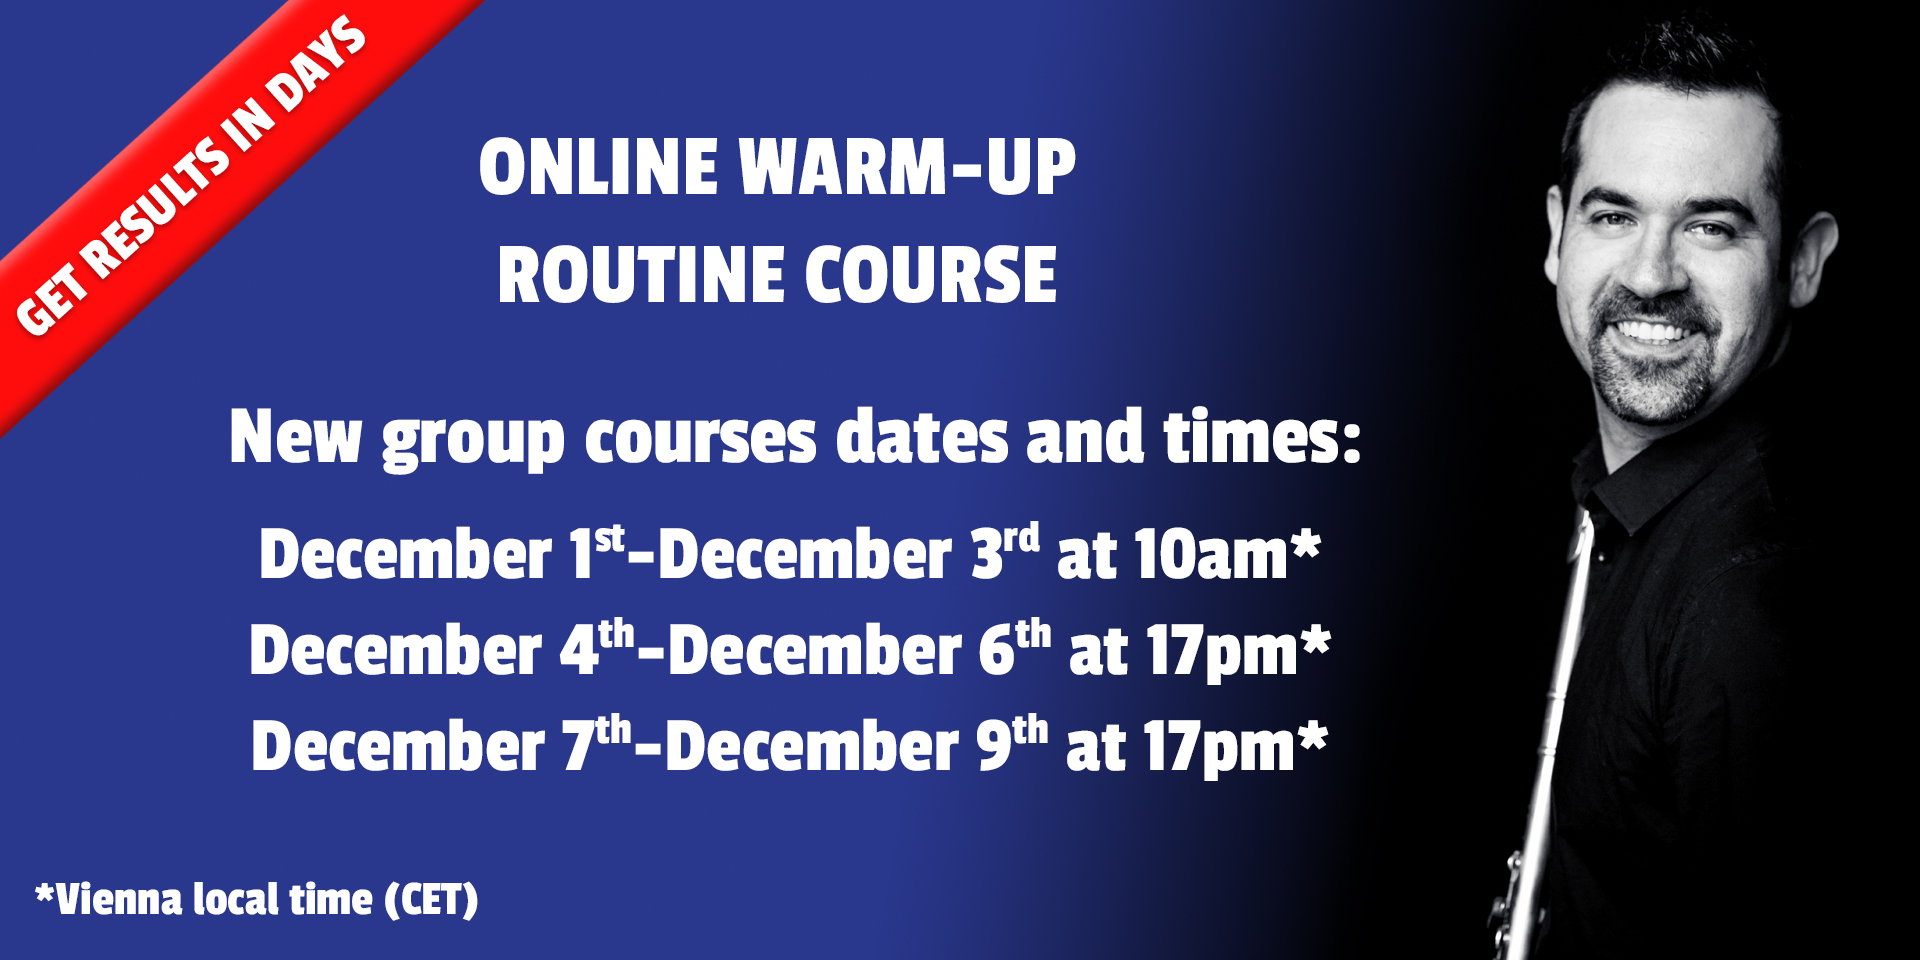 Warm-up courses dates and times